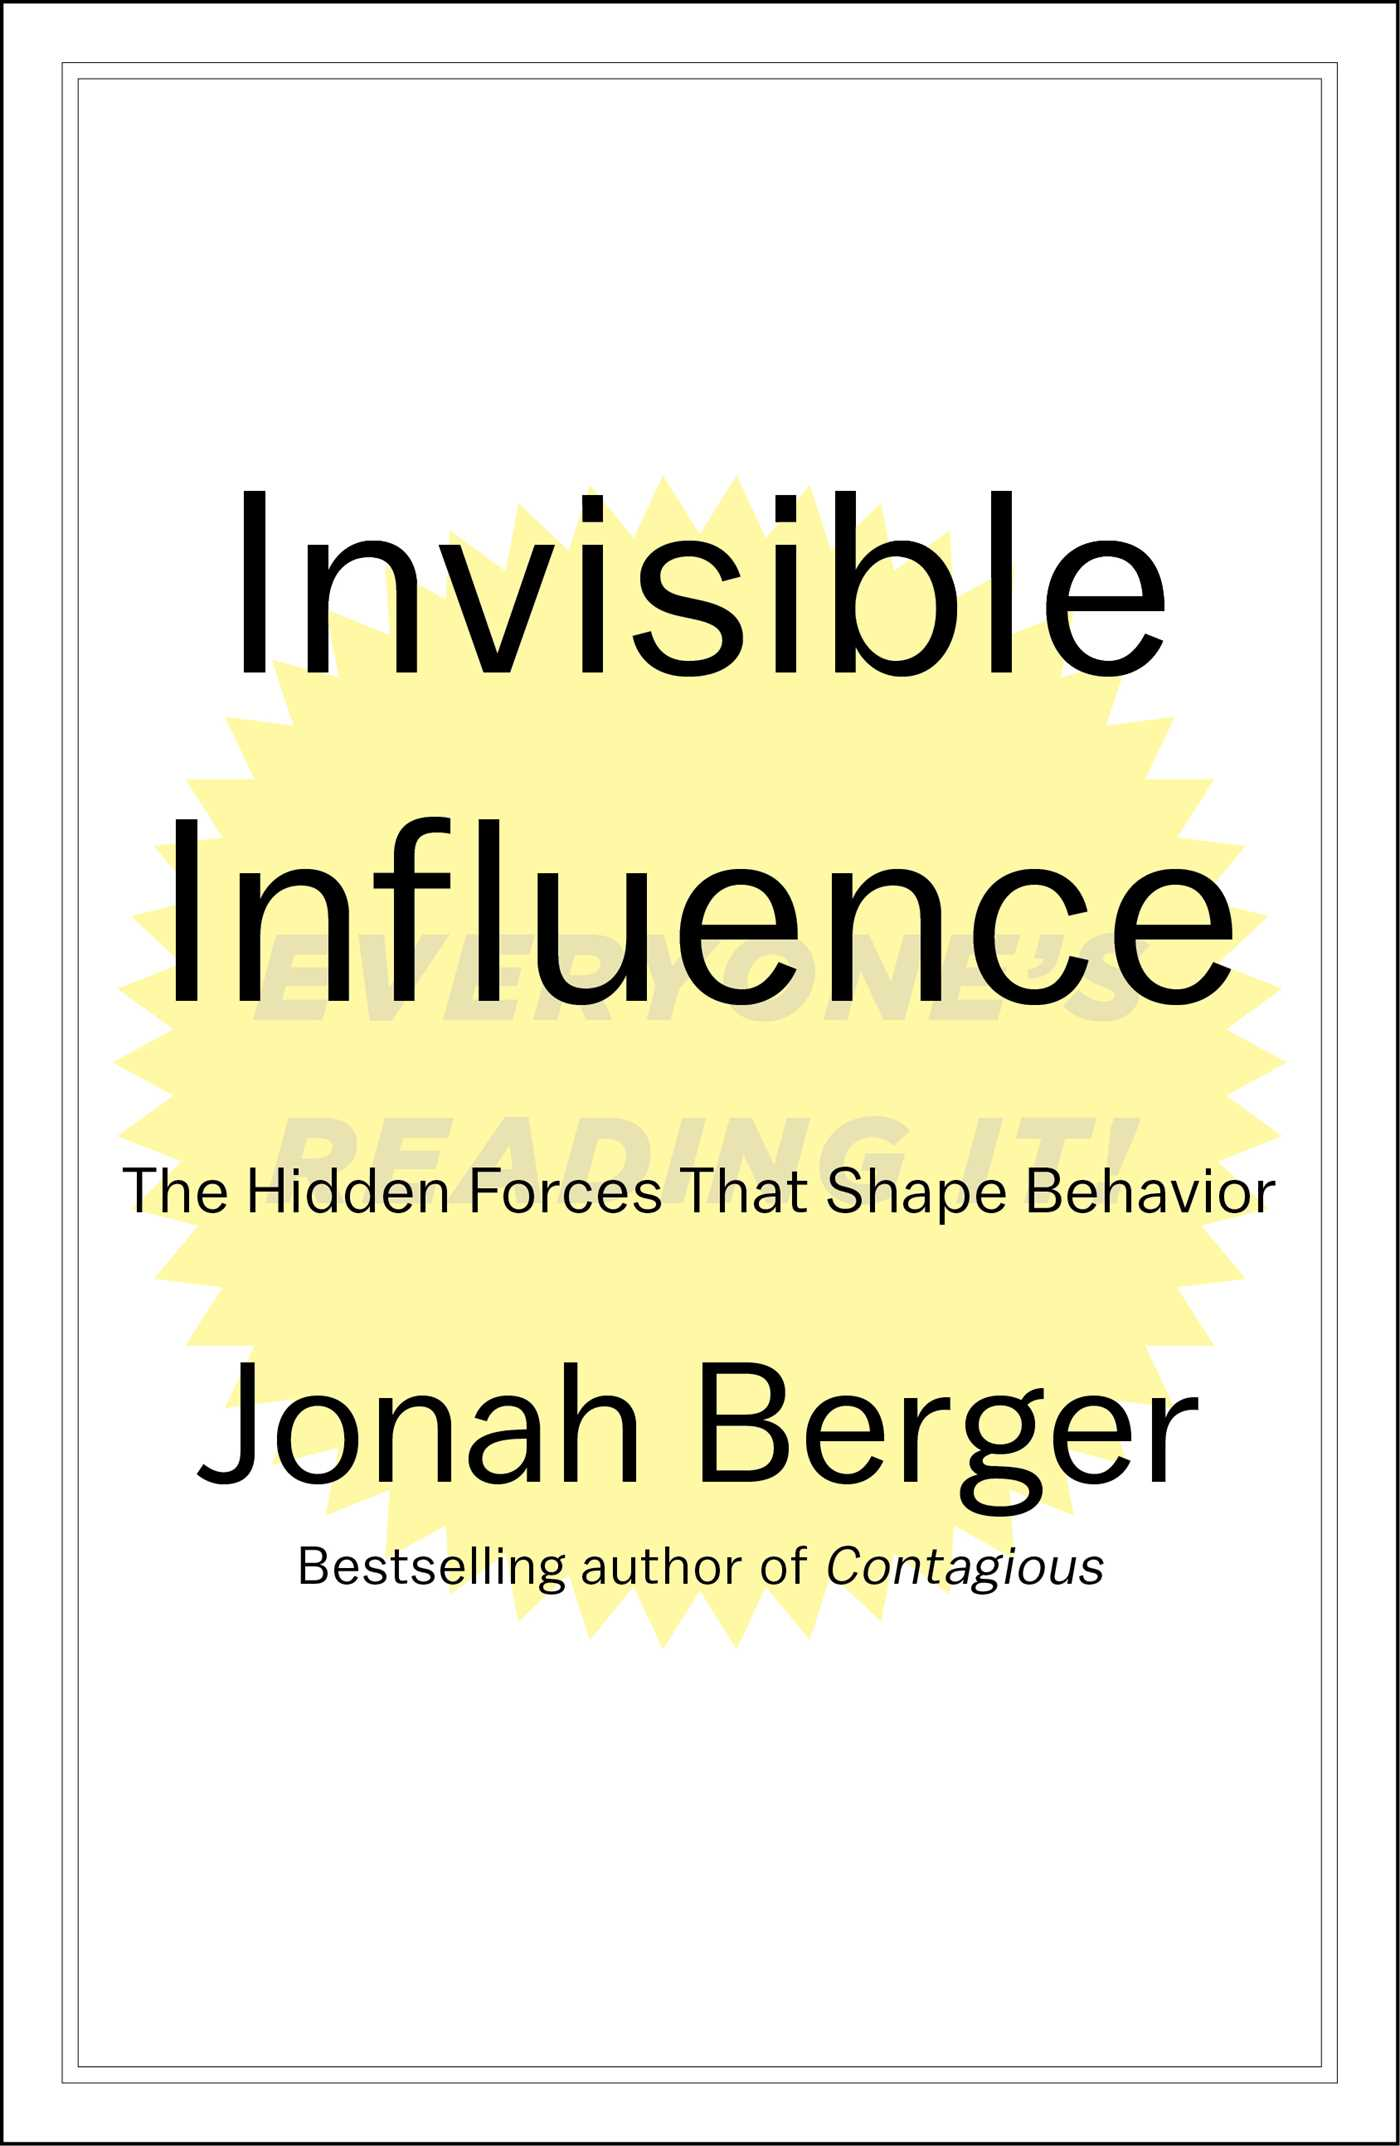 Invisible influence 9781476759692 hr